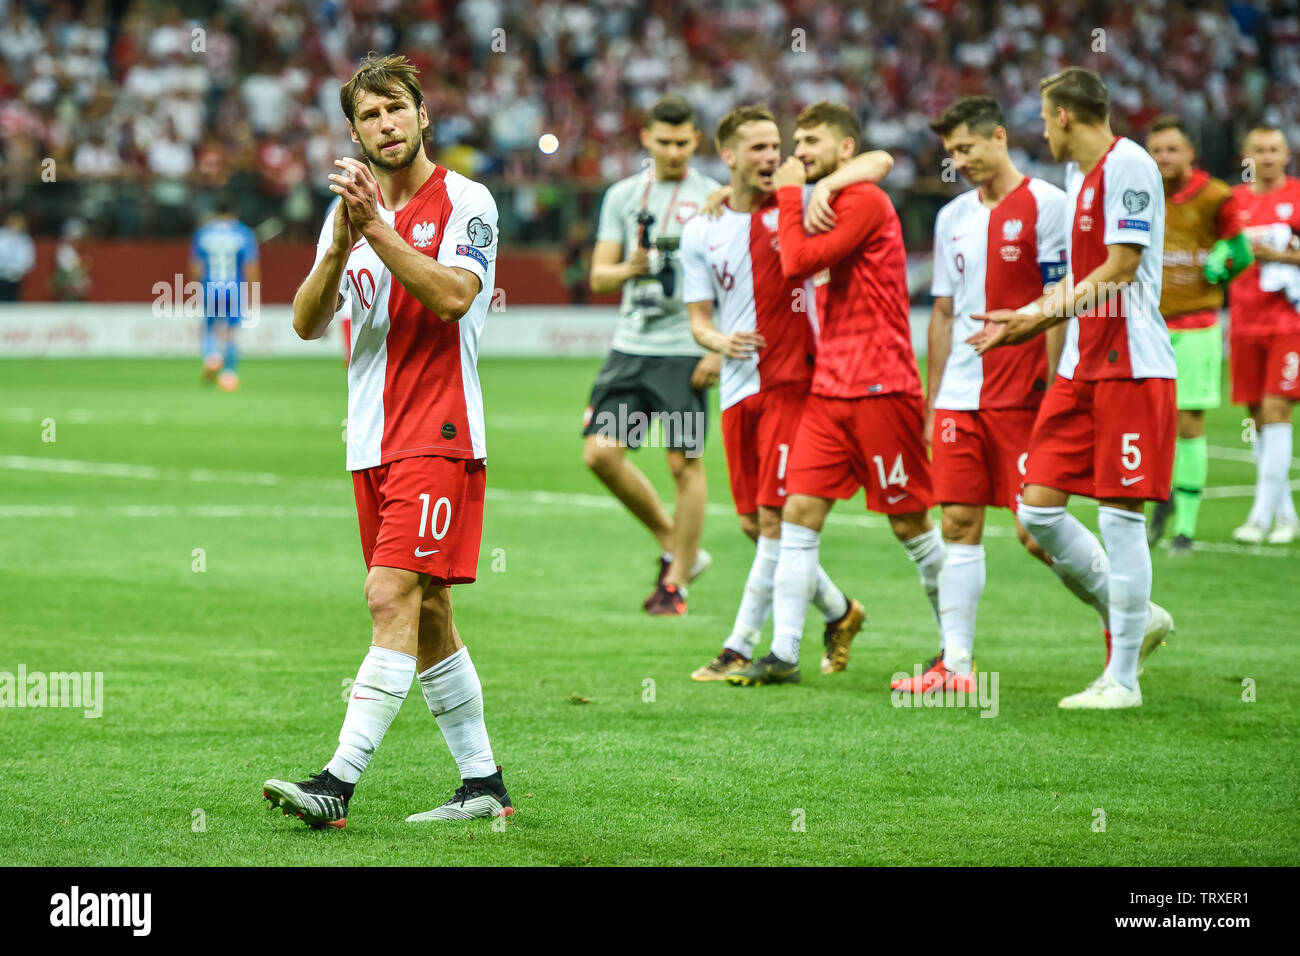 WARSAW, POLAND - JUNE 10, 2019: Qualifications Euro 2020  match Poland - Israel 4:0. Grzegorz Krychowiak and team of Poland after the match. - Stock Image